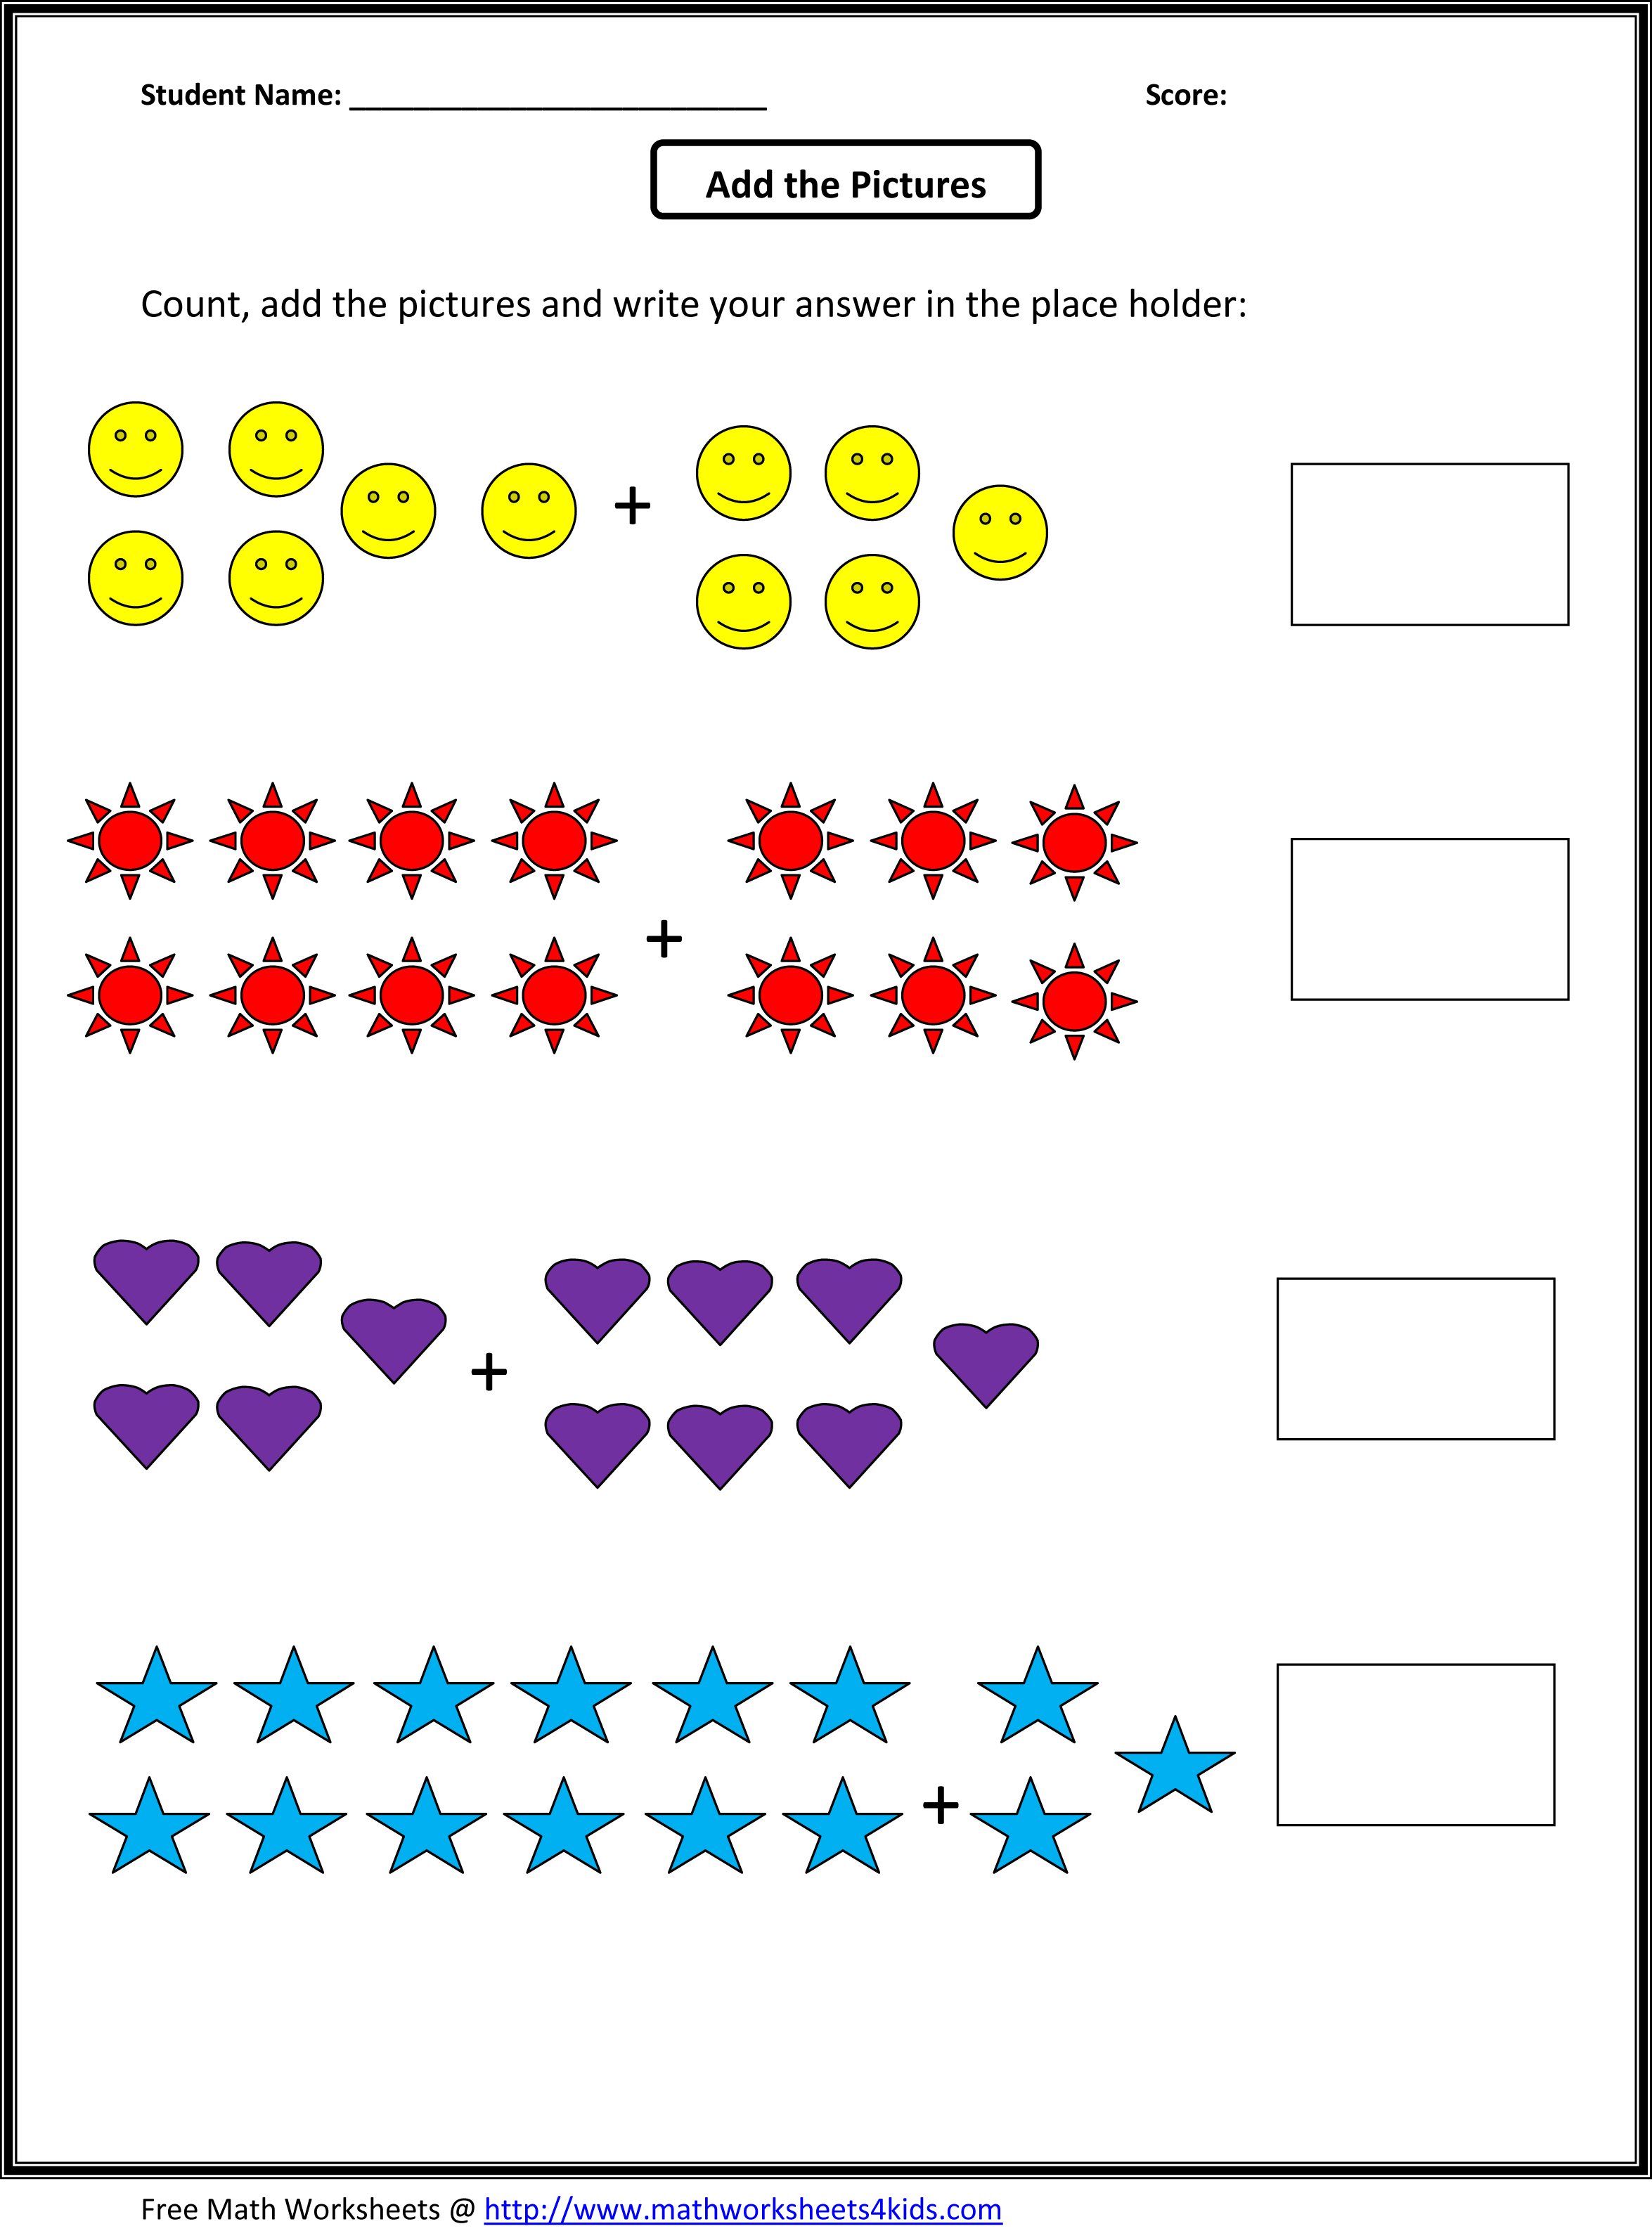 Weirdmailus  Stunning Grade  Maths Worksheet  Reocurent With Heavenly Math Worksheets For St Grade Free  Reocurent With Beautiful Ancient Egypt Worksheets Also Planet Earth Worksheets In Addition Bar Graph Worksheet And Free Math Worksheets For Th Grade As Well As Physical And Chemical Changes Worksheet Answers Additionally Irs Tax Computation Worksheet From Reocurentcom With Weirdmailus  Heavenly Grade  Maths Worksheet  Reocurent With Beautiful Math Worksheets For St Grade Free  Reocurent And Stunning Ancient Egypt Worksheets Also Planet Earth Worksheets In Addition Bar Graph Worksheet From Reocurentcom